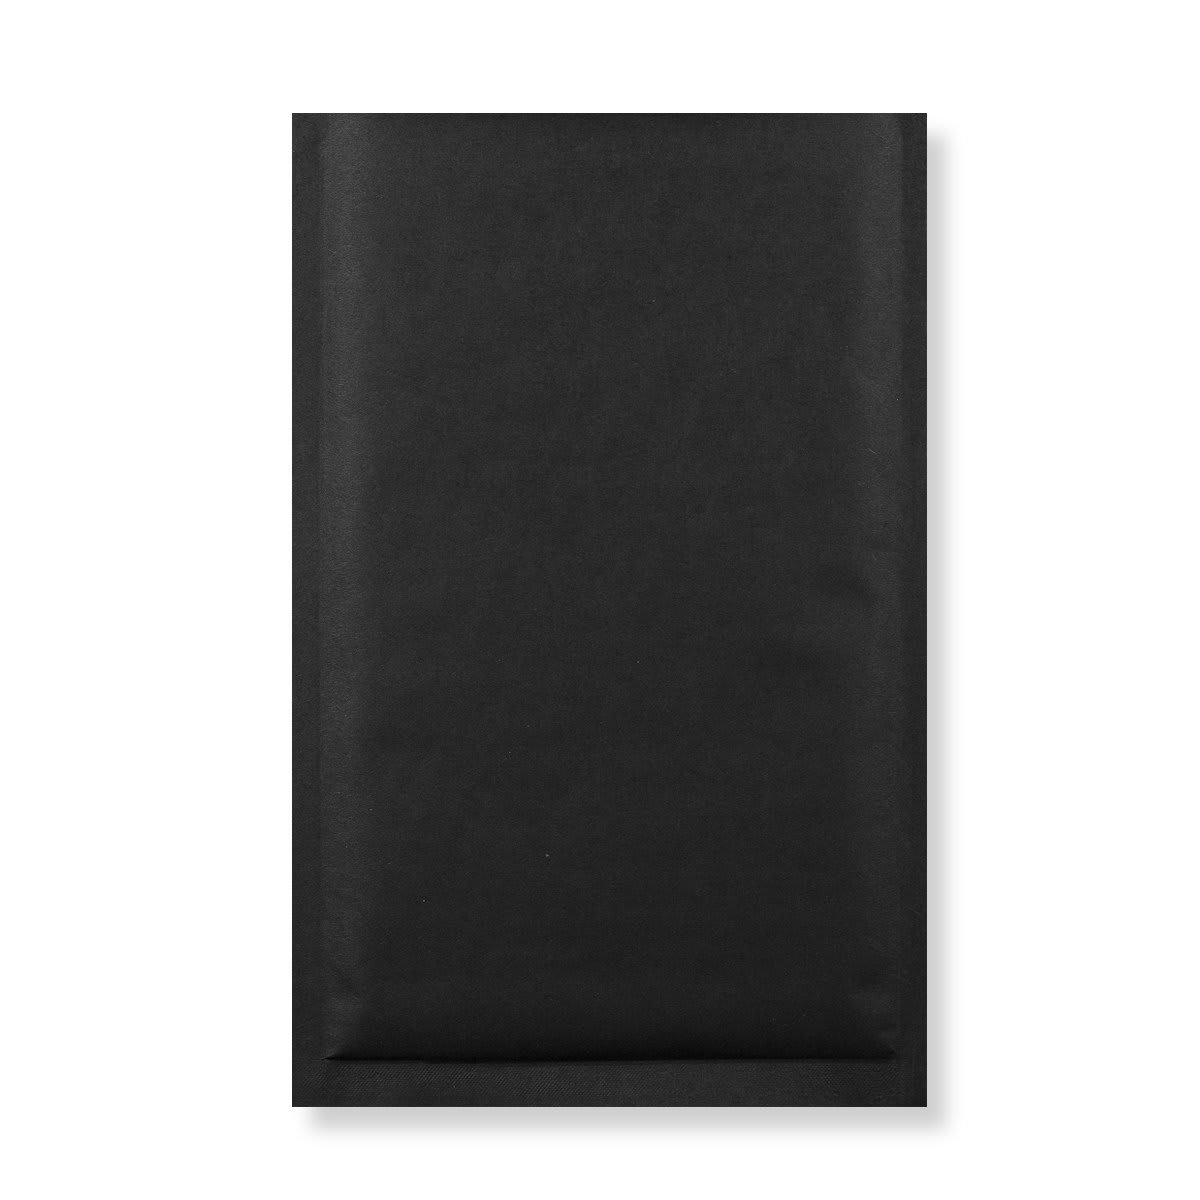 C4 BLACK PADDED BUBBLE ENVELOPES (324 x 230MM)